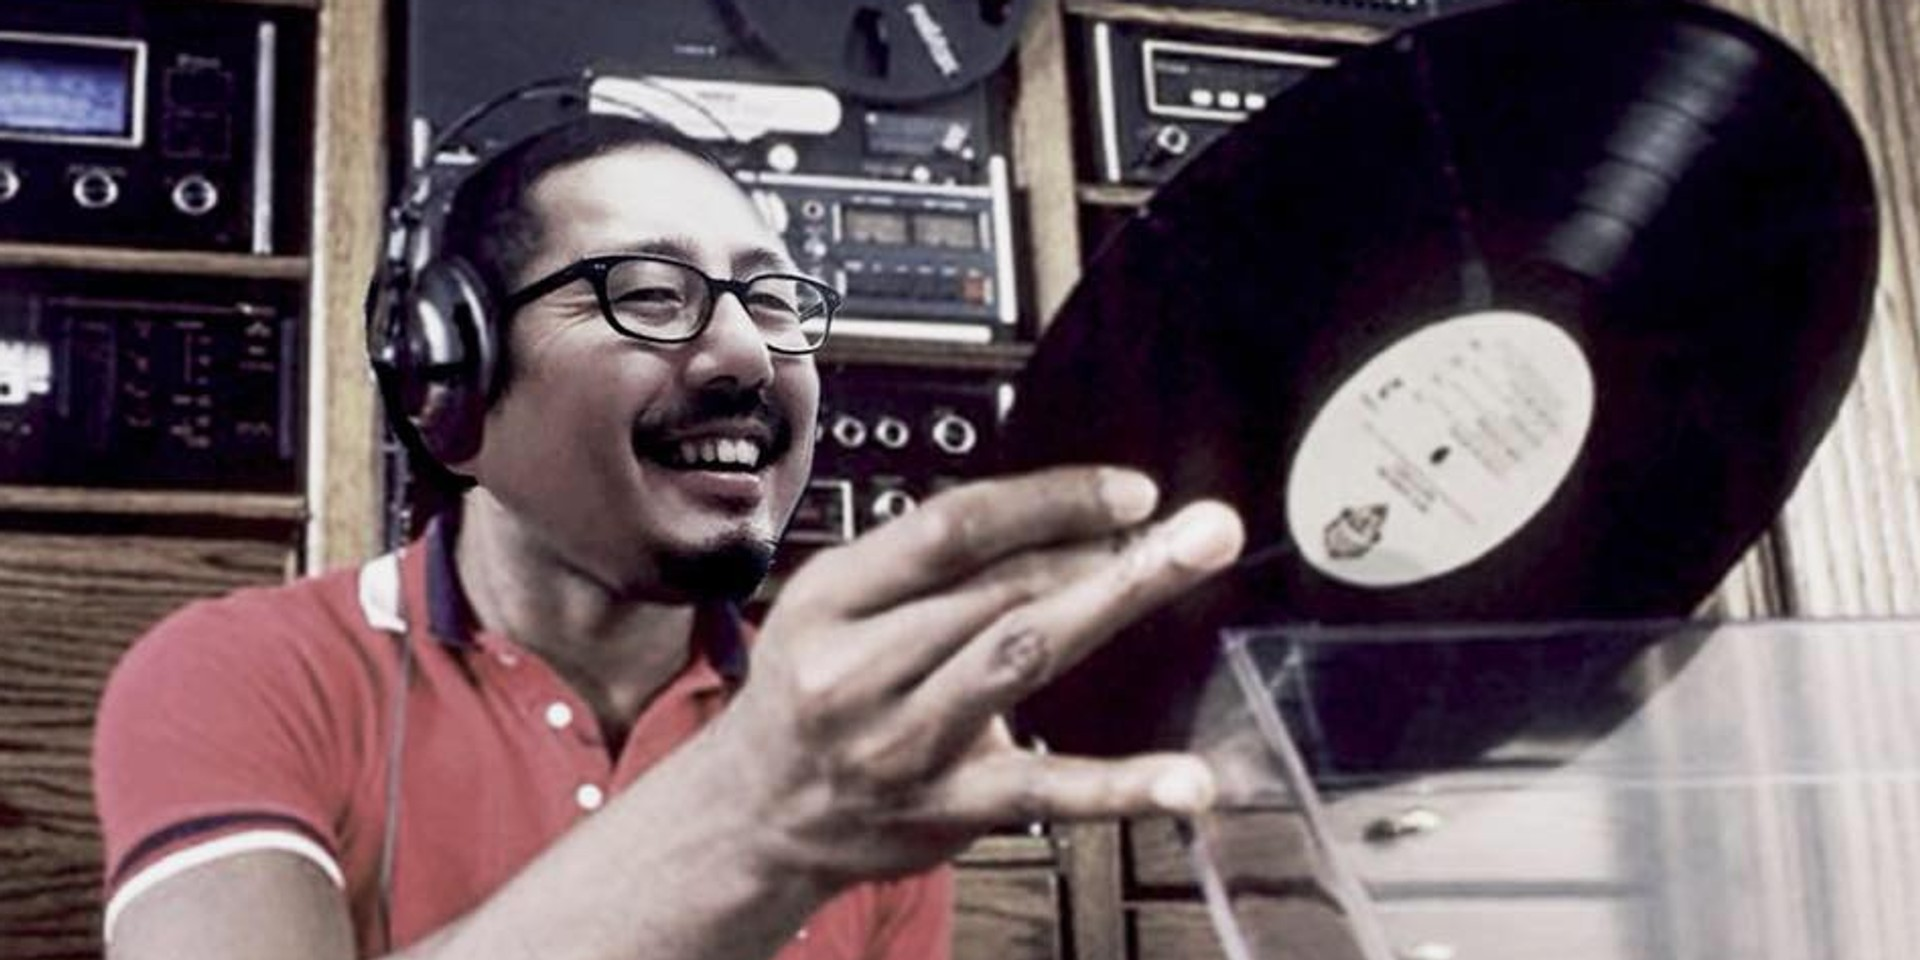 """""""For me, each vinyl has a story"""": DJ Itch on his collection of over 1,000 Southeast Asian vinyl records – watch"""